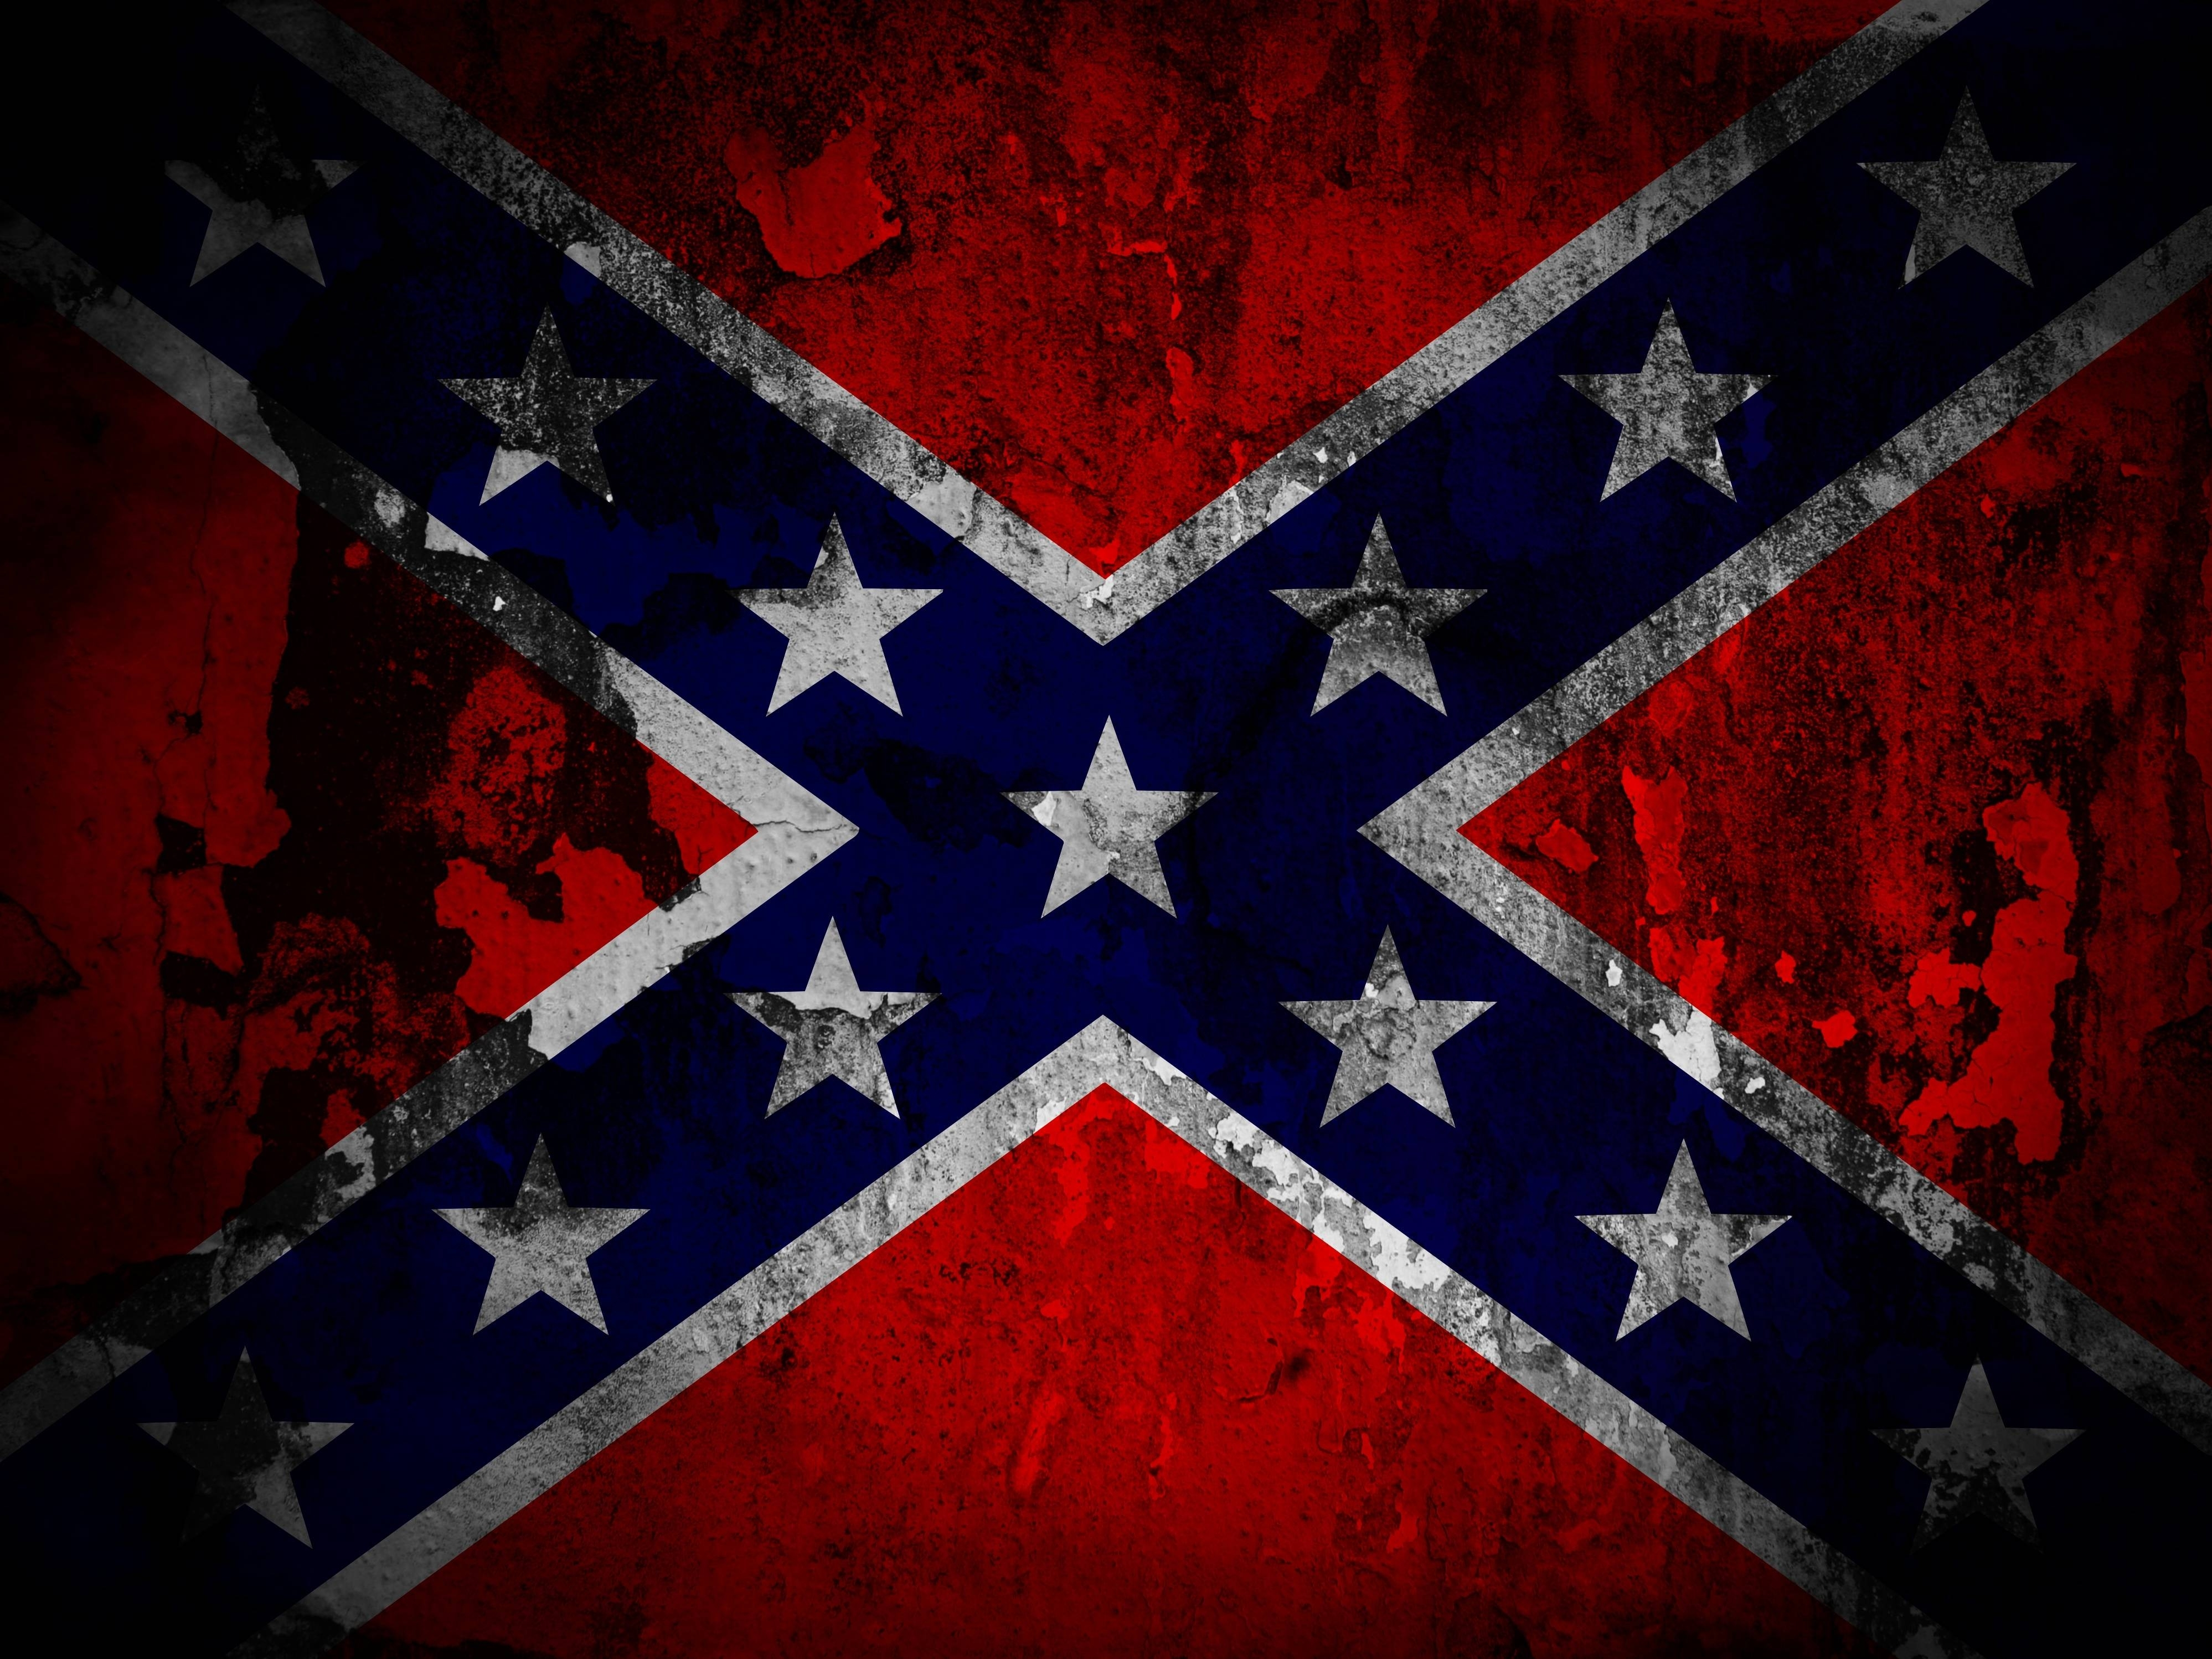 rebel flag backgrounds - wallpaper cave